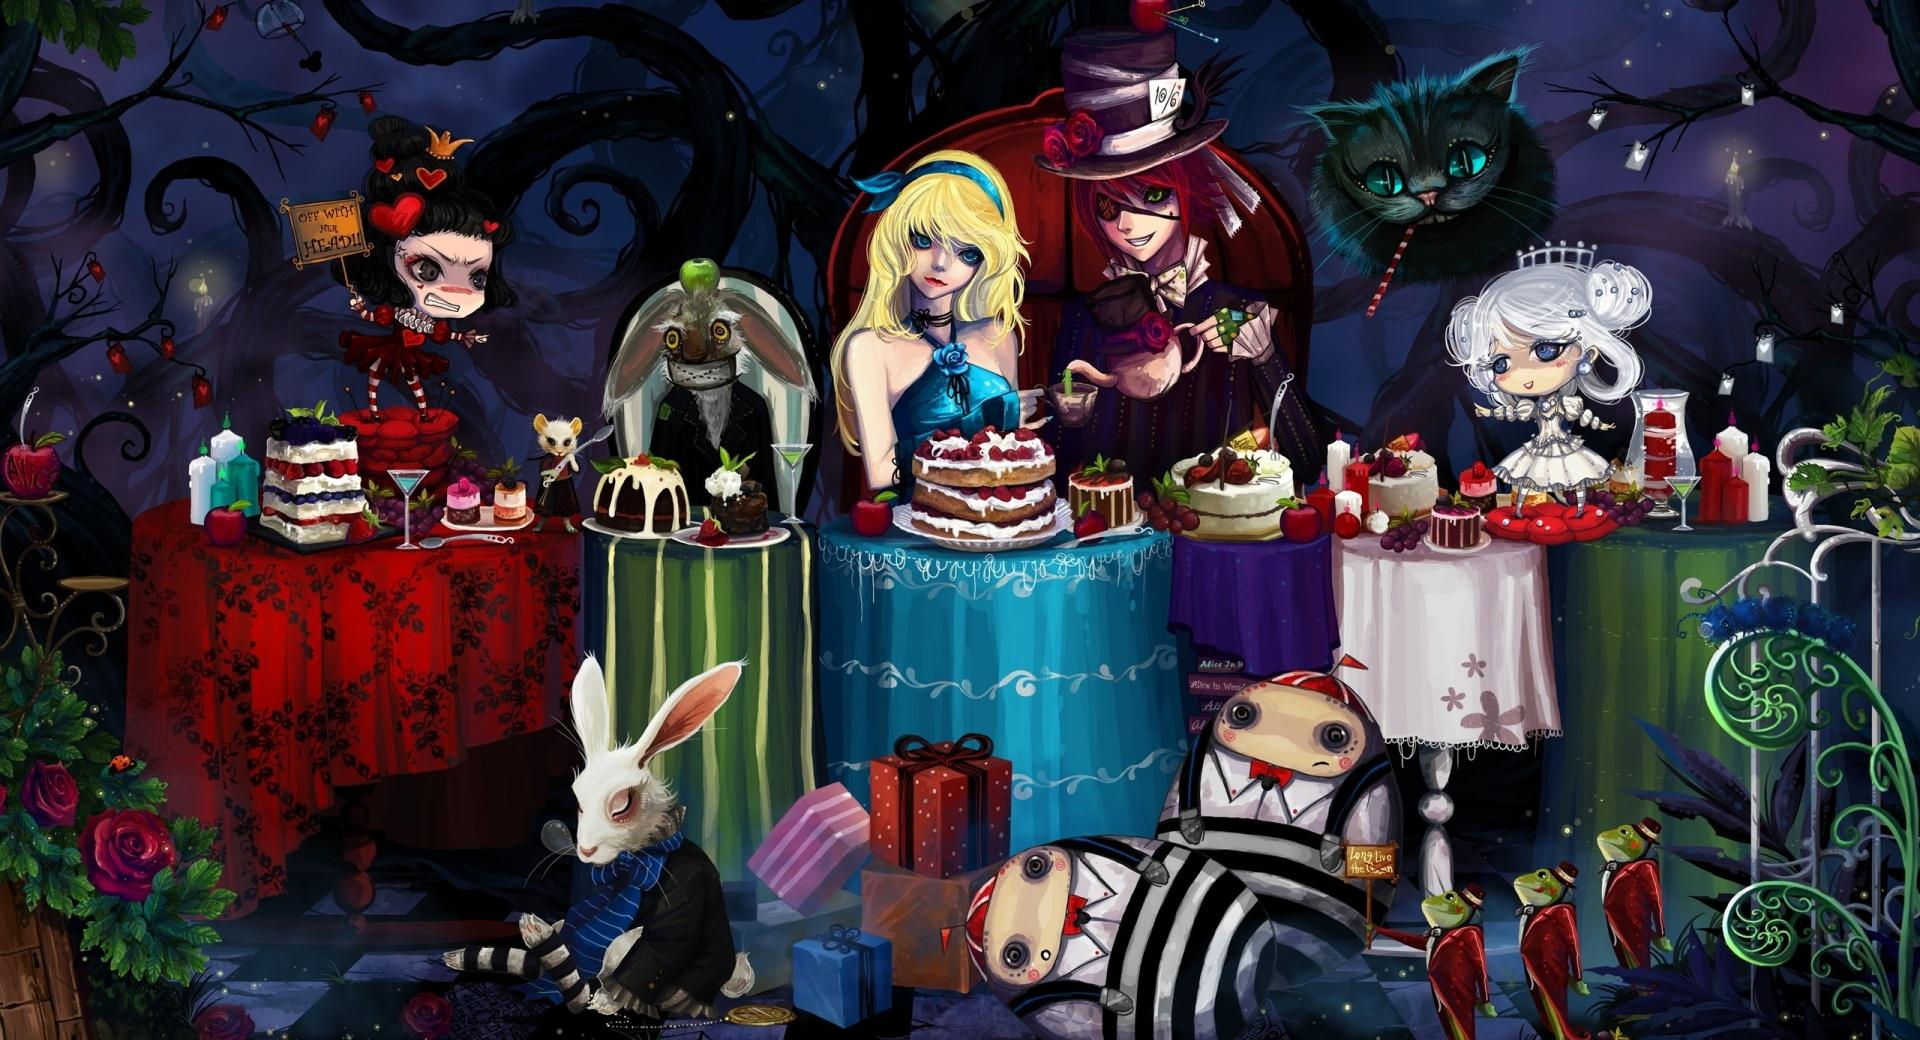 Alice In Wonderland Tea Party wallpapers HD quality